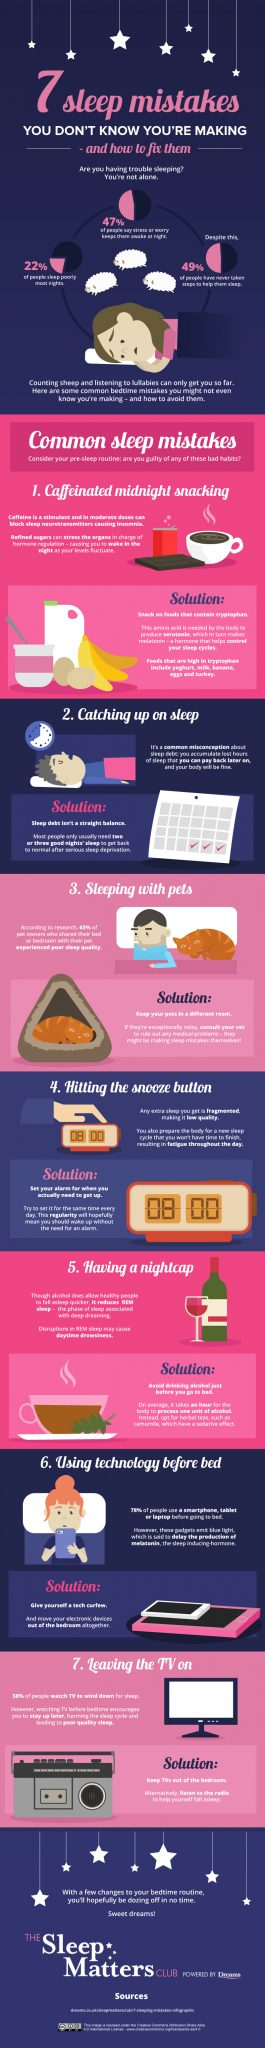 7-Sleep-Mistakes-You-Dont-Know-Youre-Making